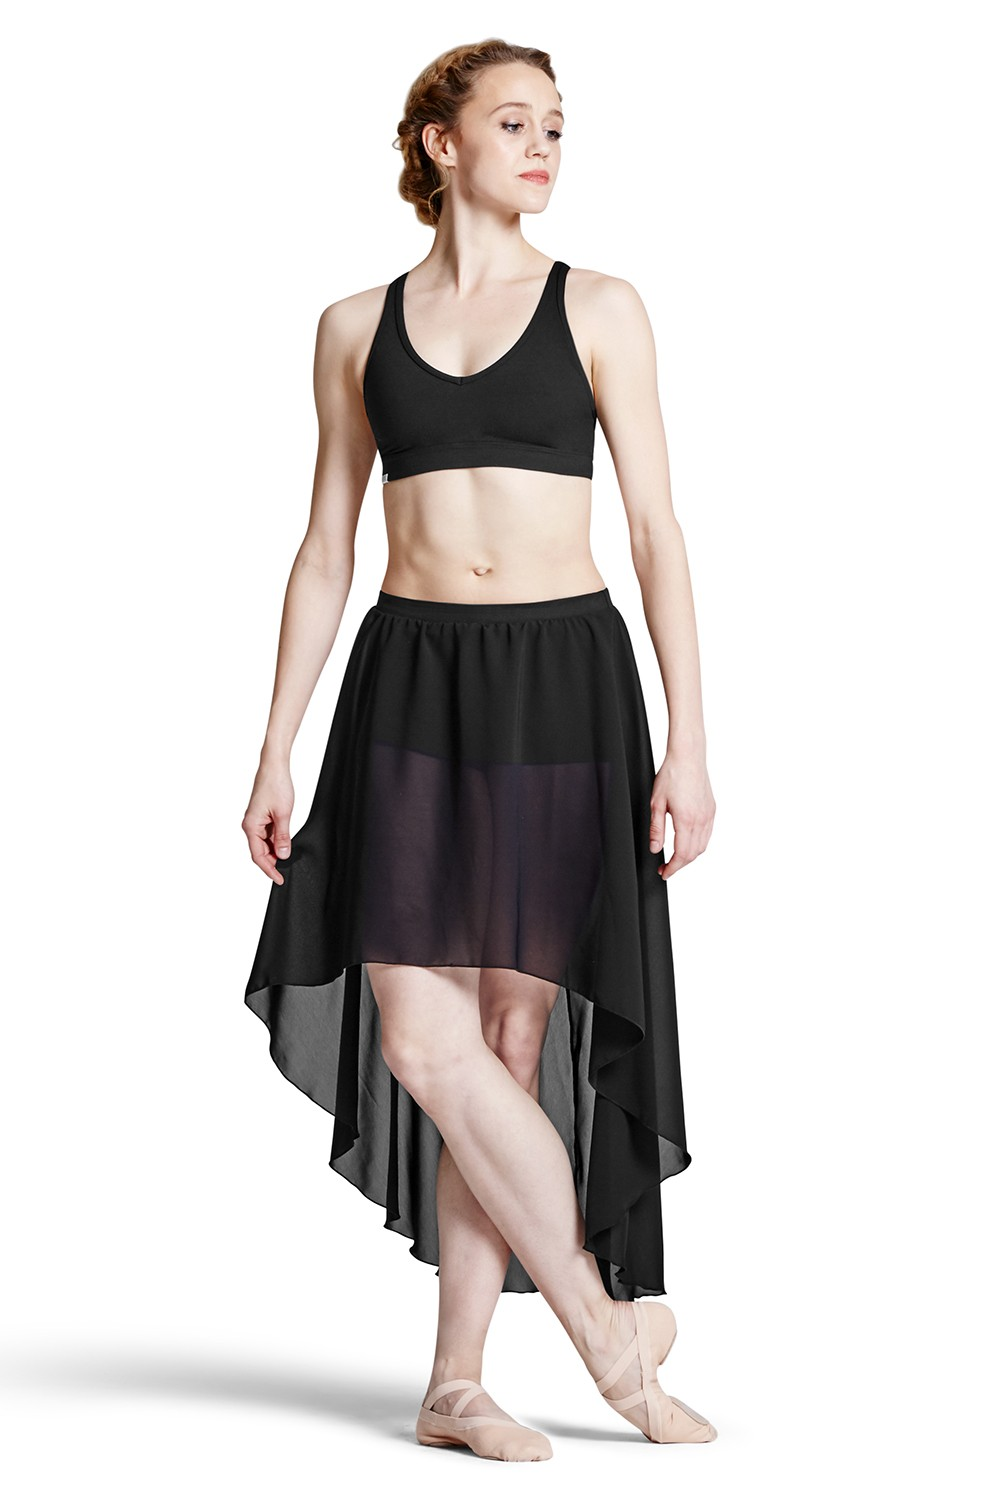 Daria Women's Dance Skirts